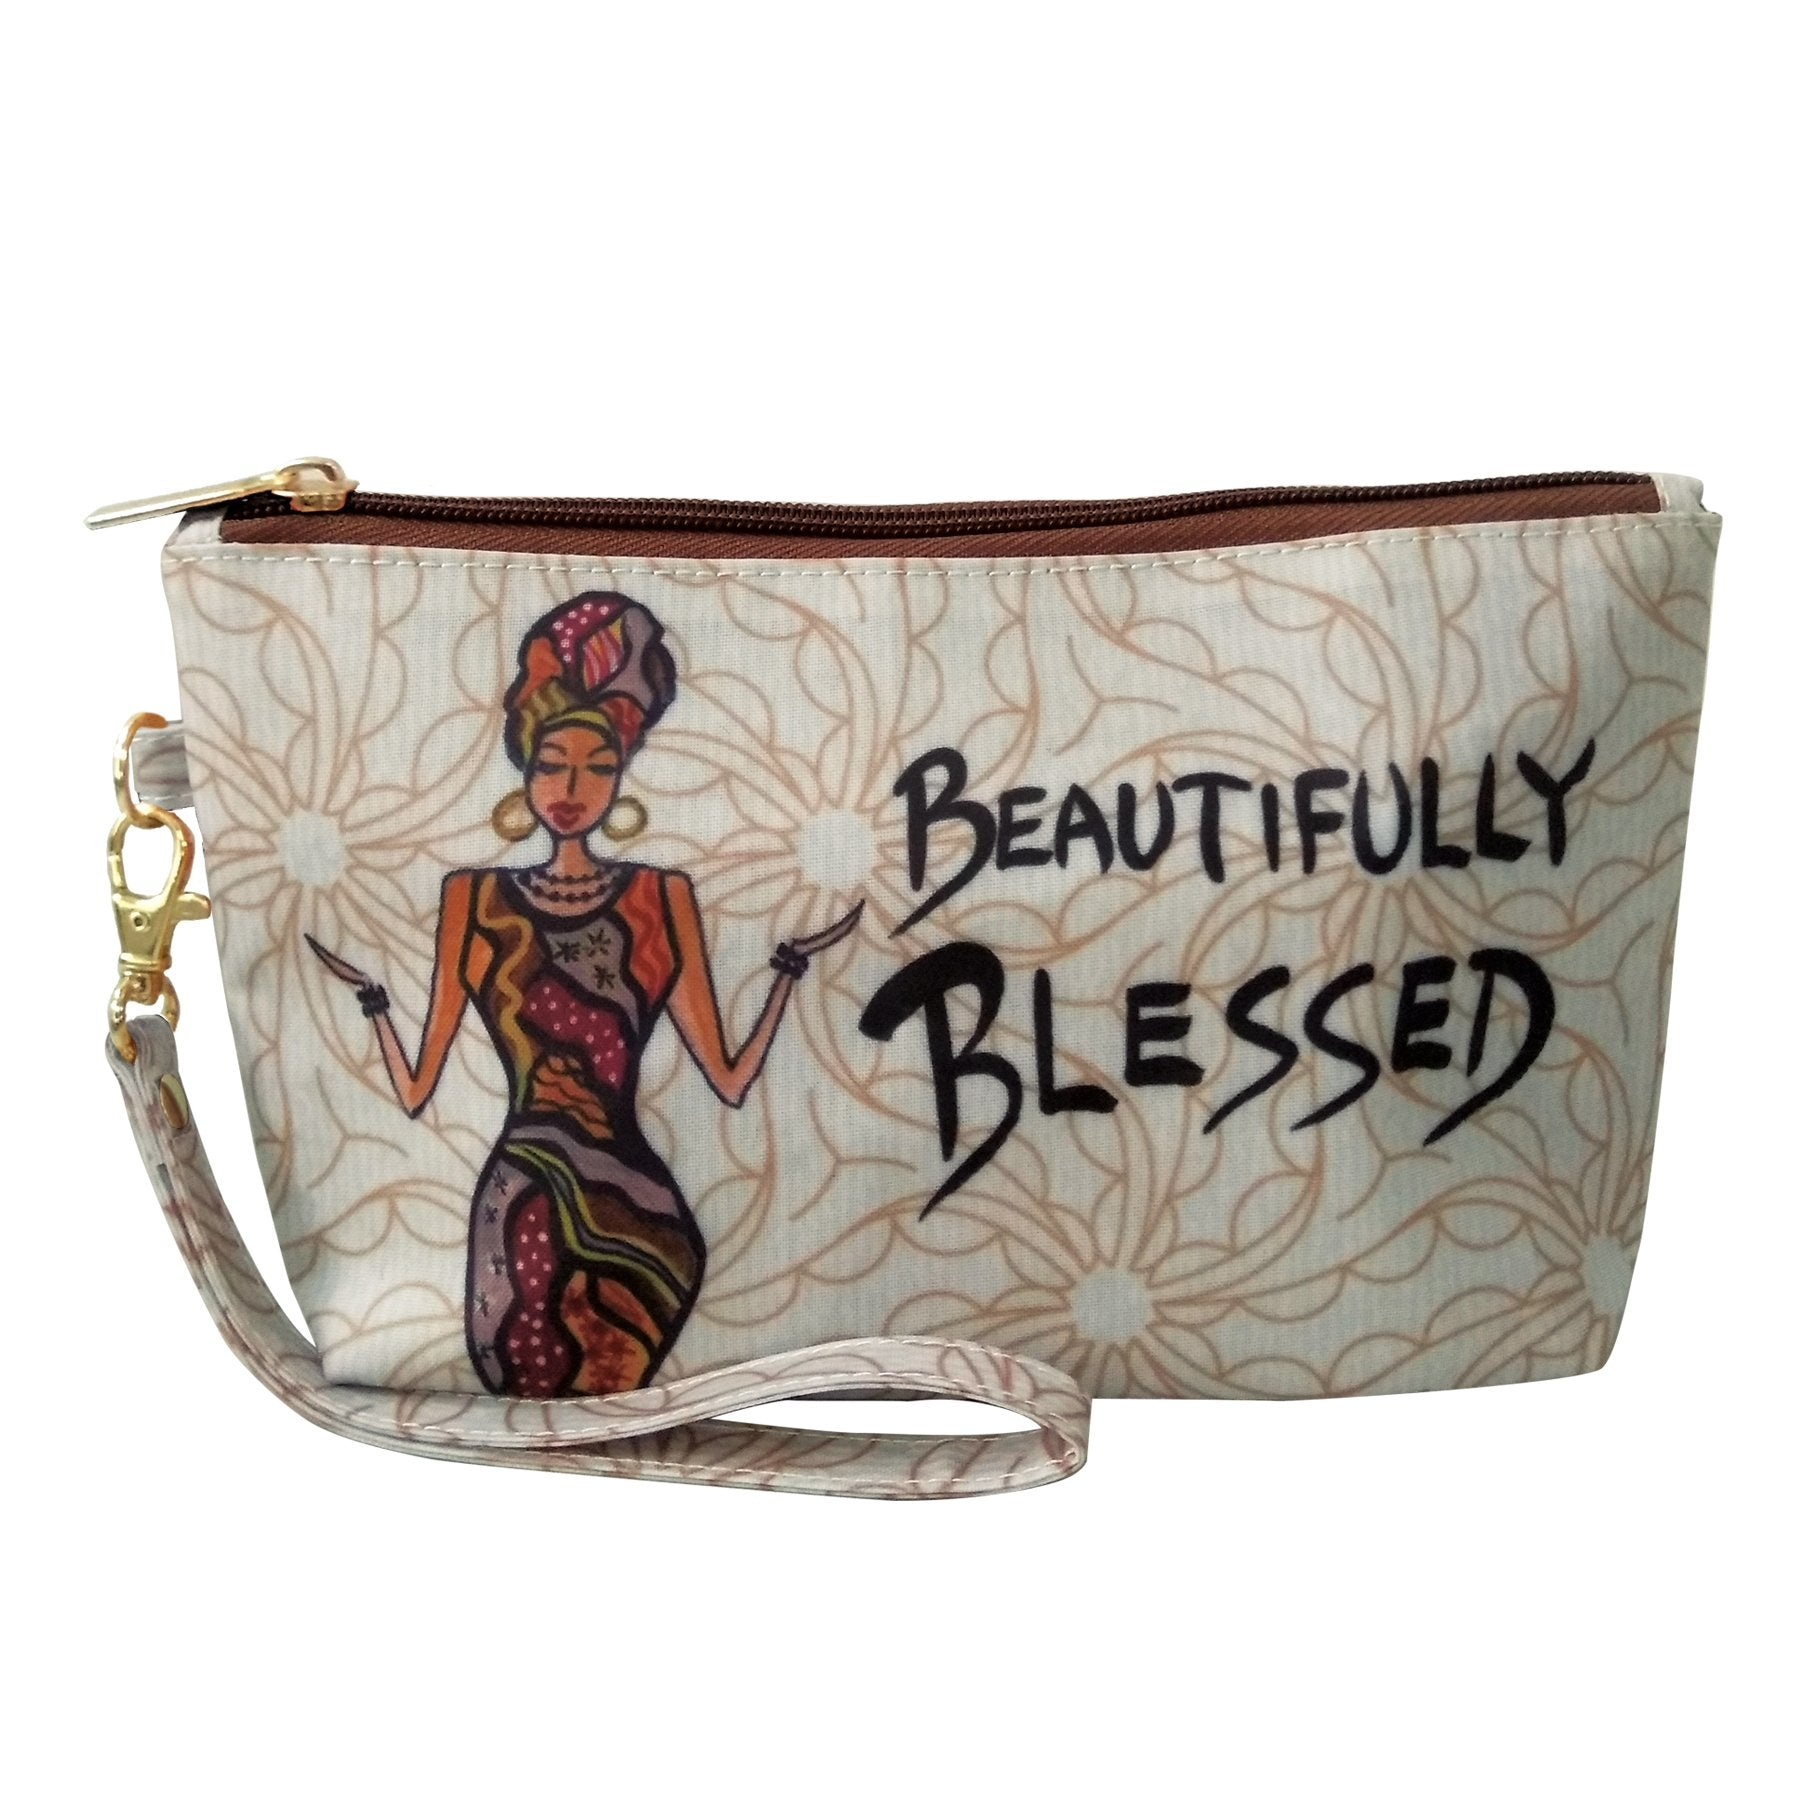 Beautifully Blessed: African American Cosmetic Pouch by Cidne Wallace